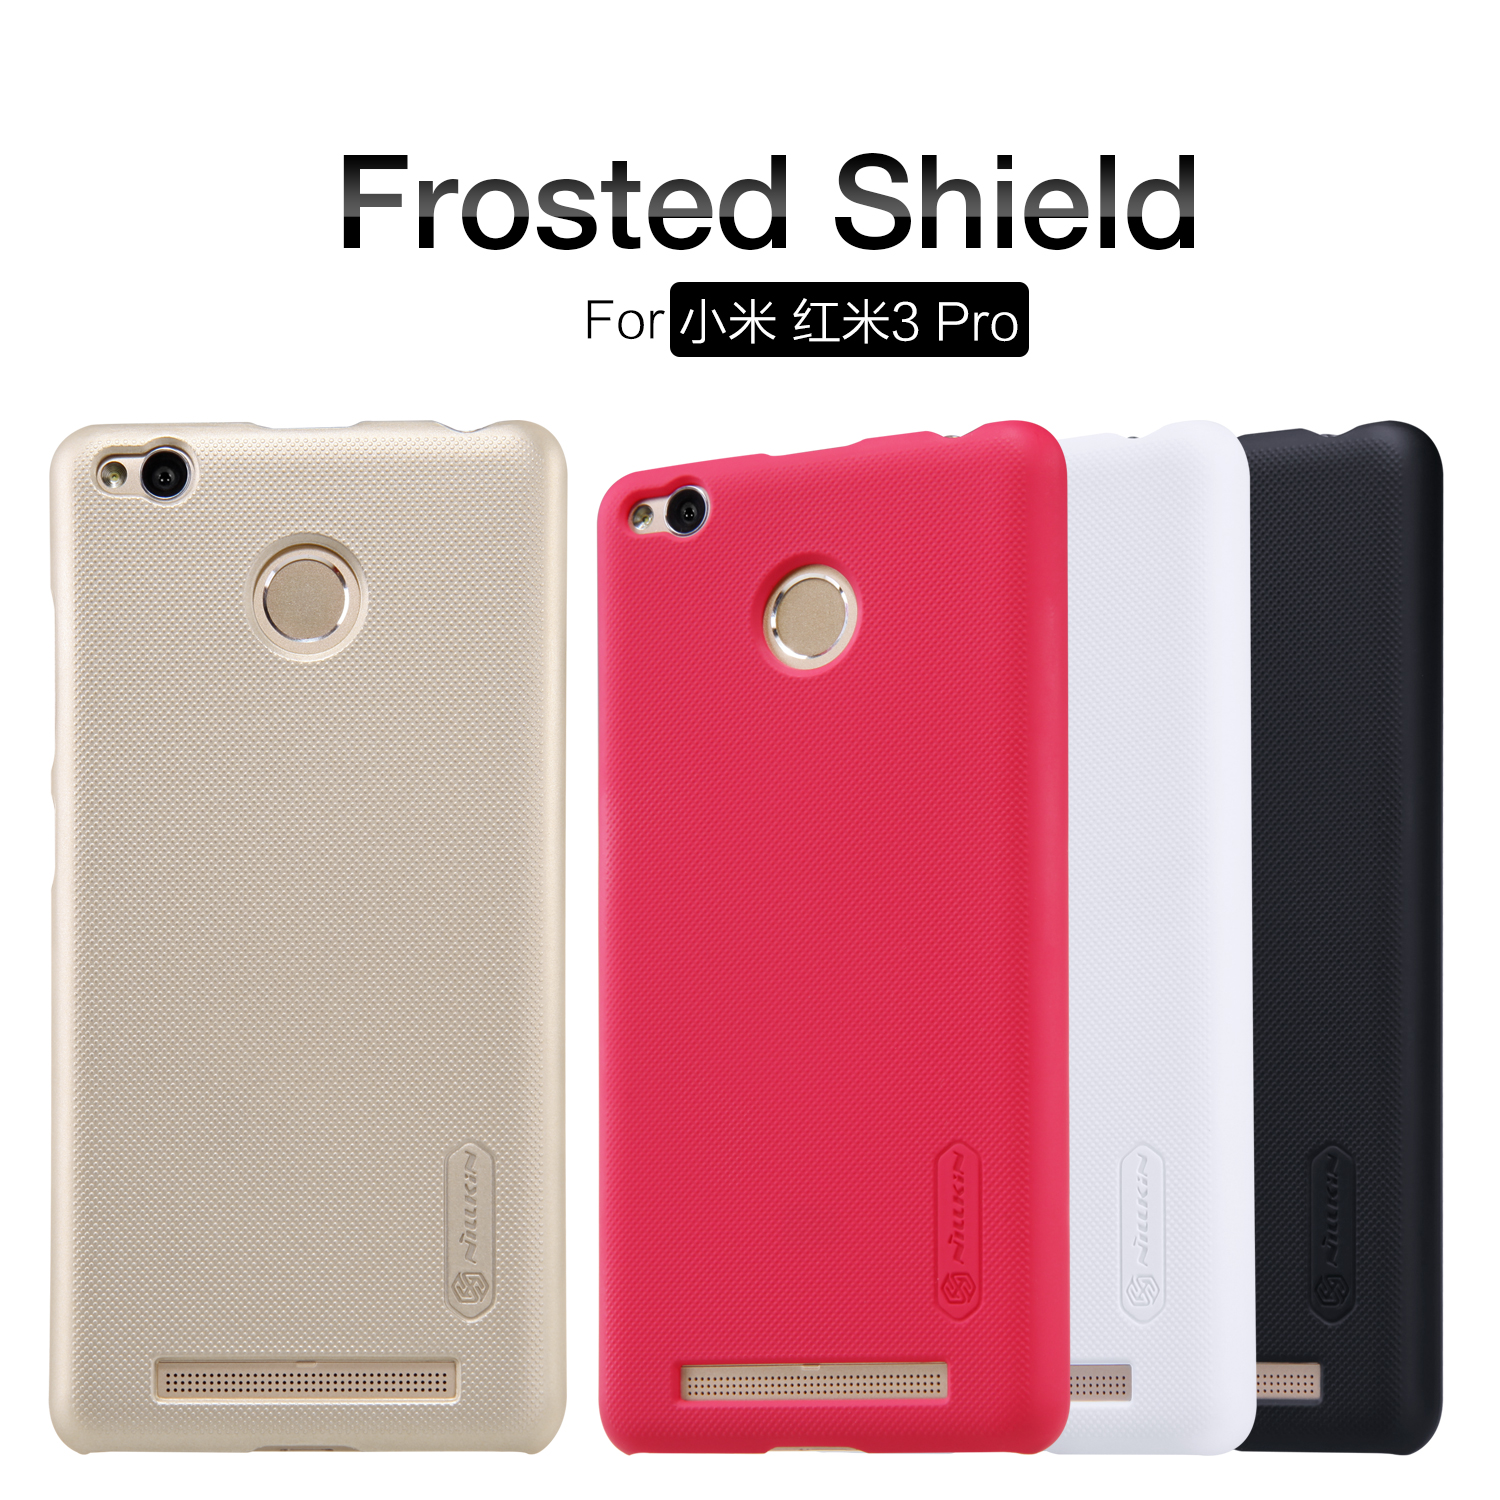 Nillkin Frosted Shield Case For Xiaomi Redmi 3 Pro 3s Prime Matte Goospery Samsung Galaxy J3 2017 Canvas Diary Orange Cases Red Mi Hard Pc Back Cover With Screen Protector